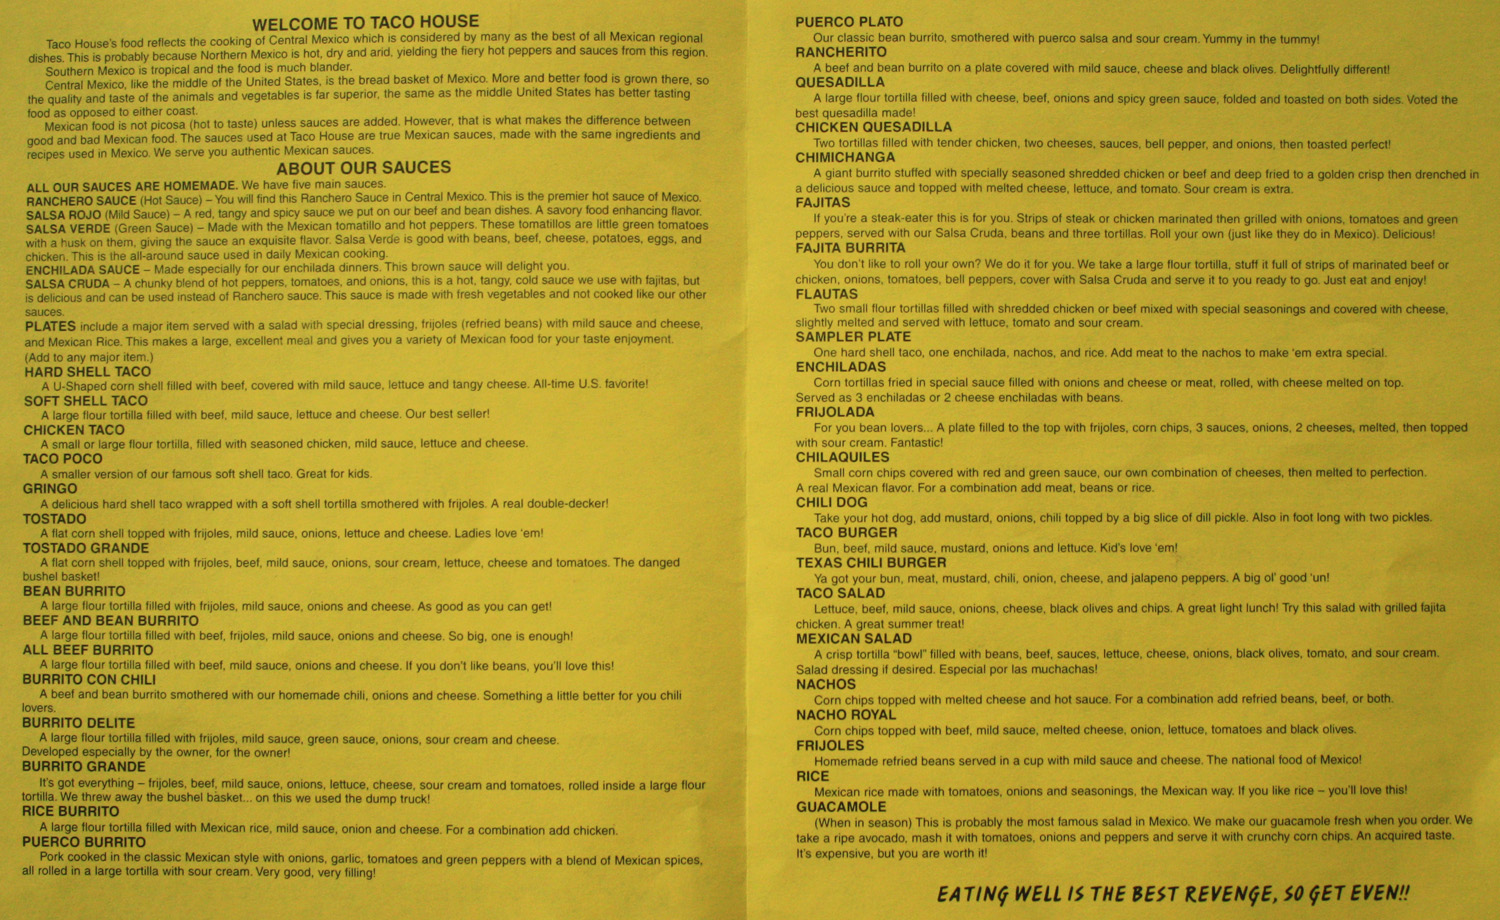 Taco house menu items.  (Click photo to enlarge, and again to enlarge even more.)